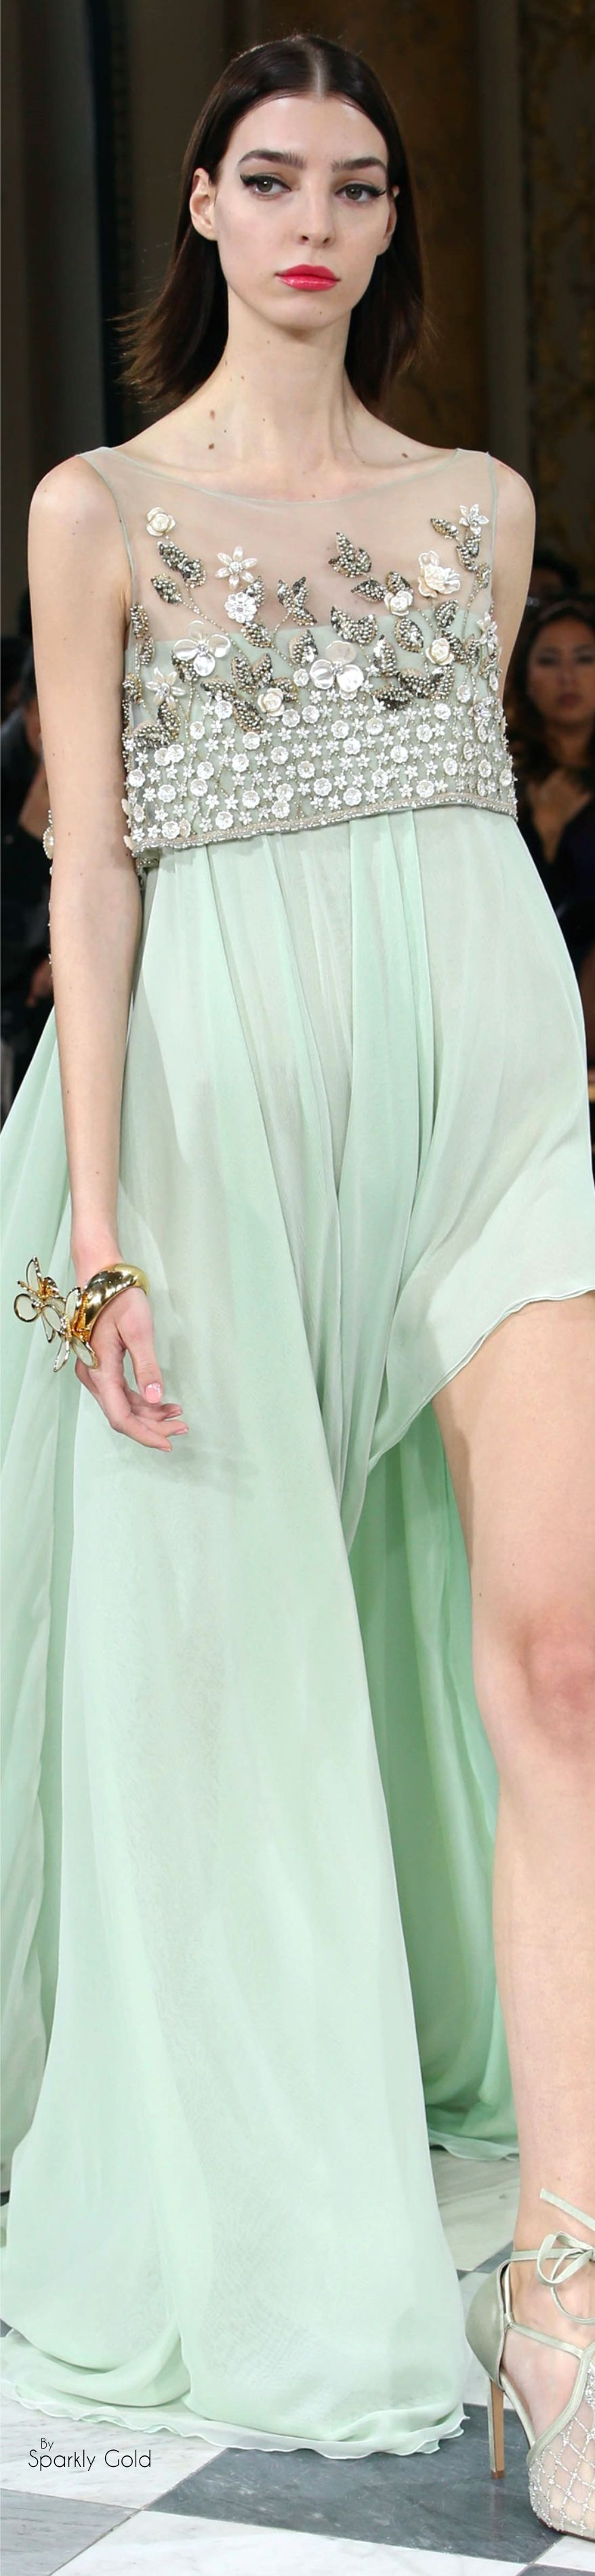 Georges hobeika spring lebanon لبنان pinterest couture